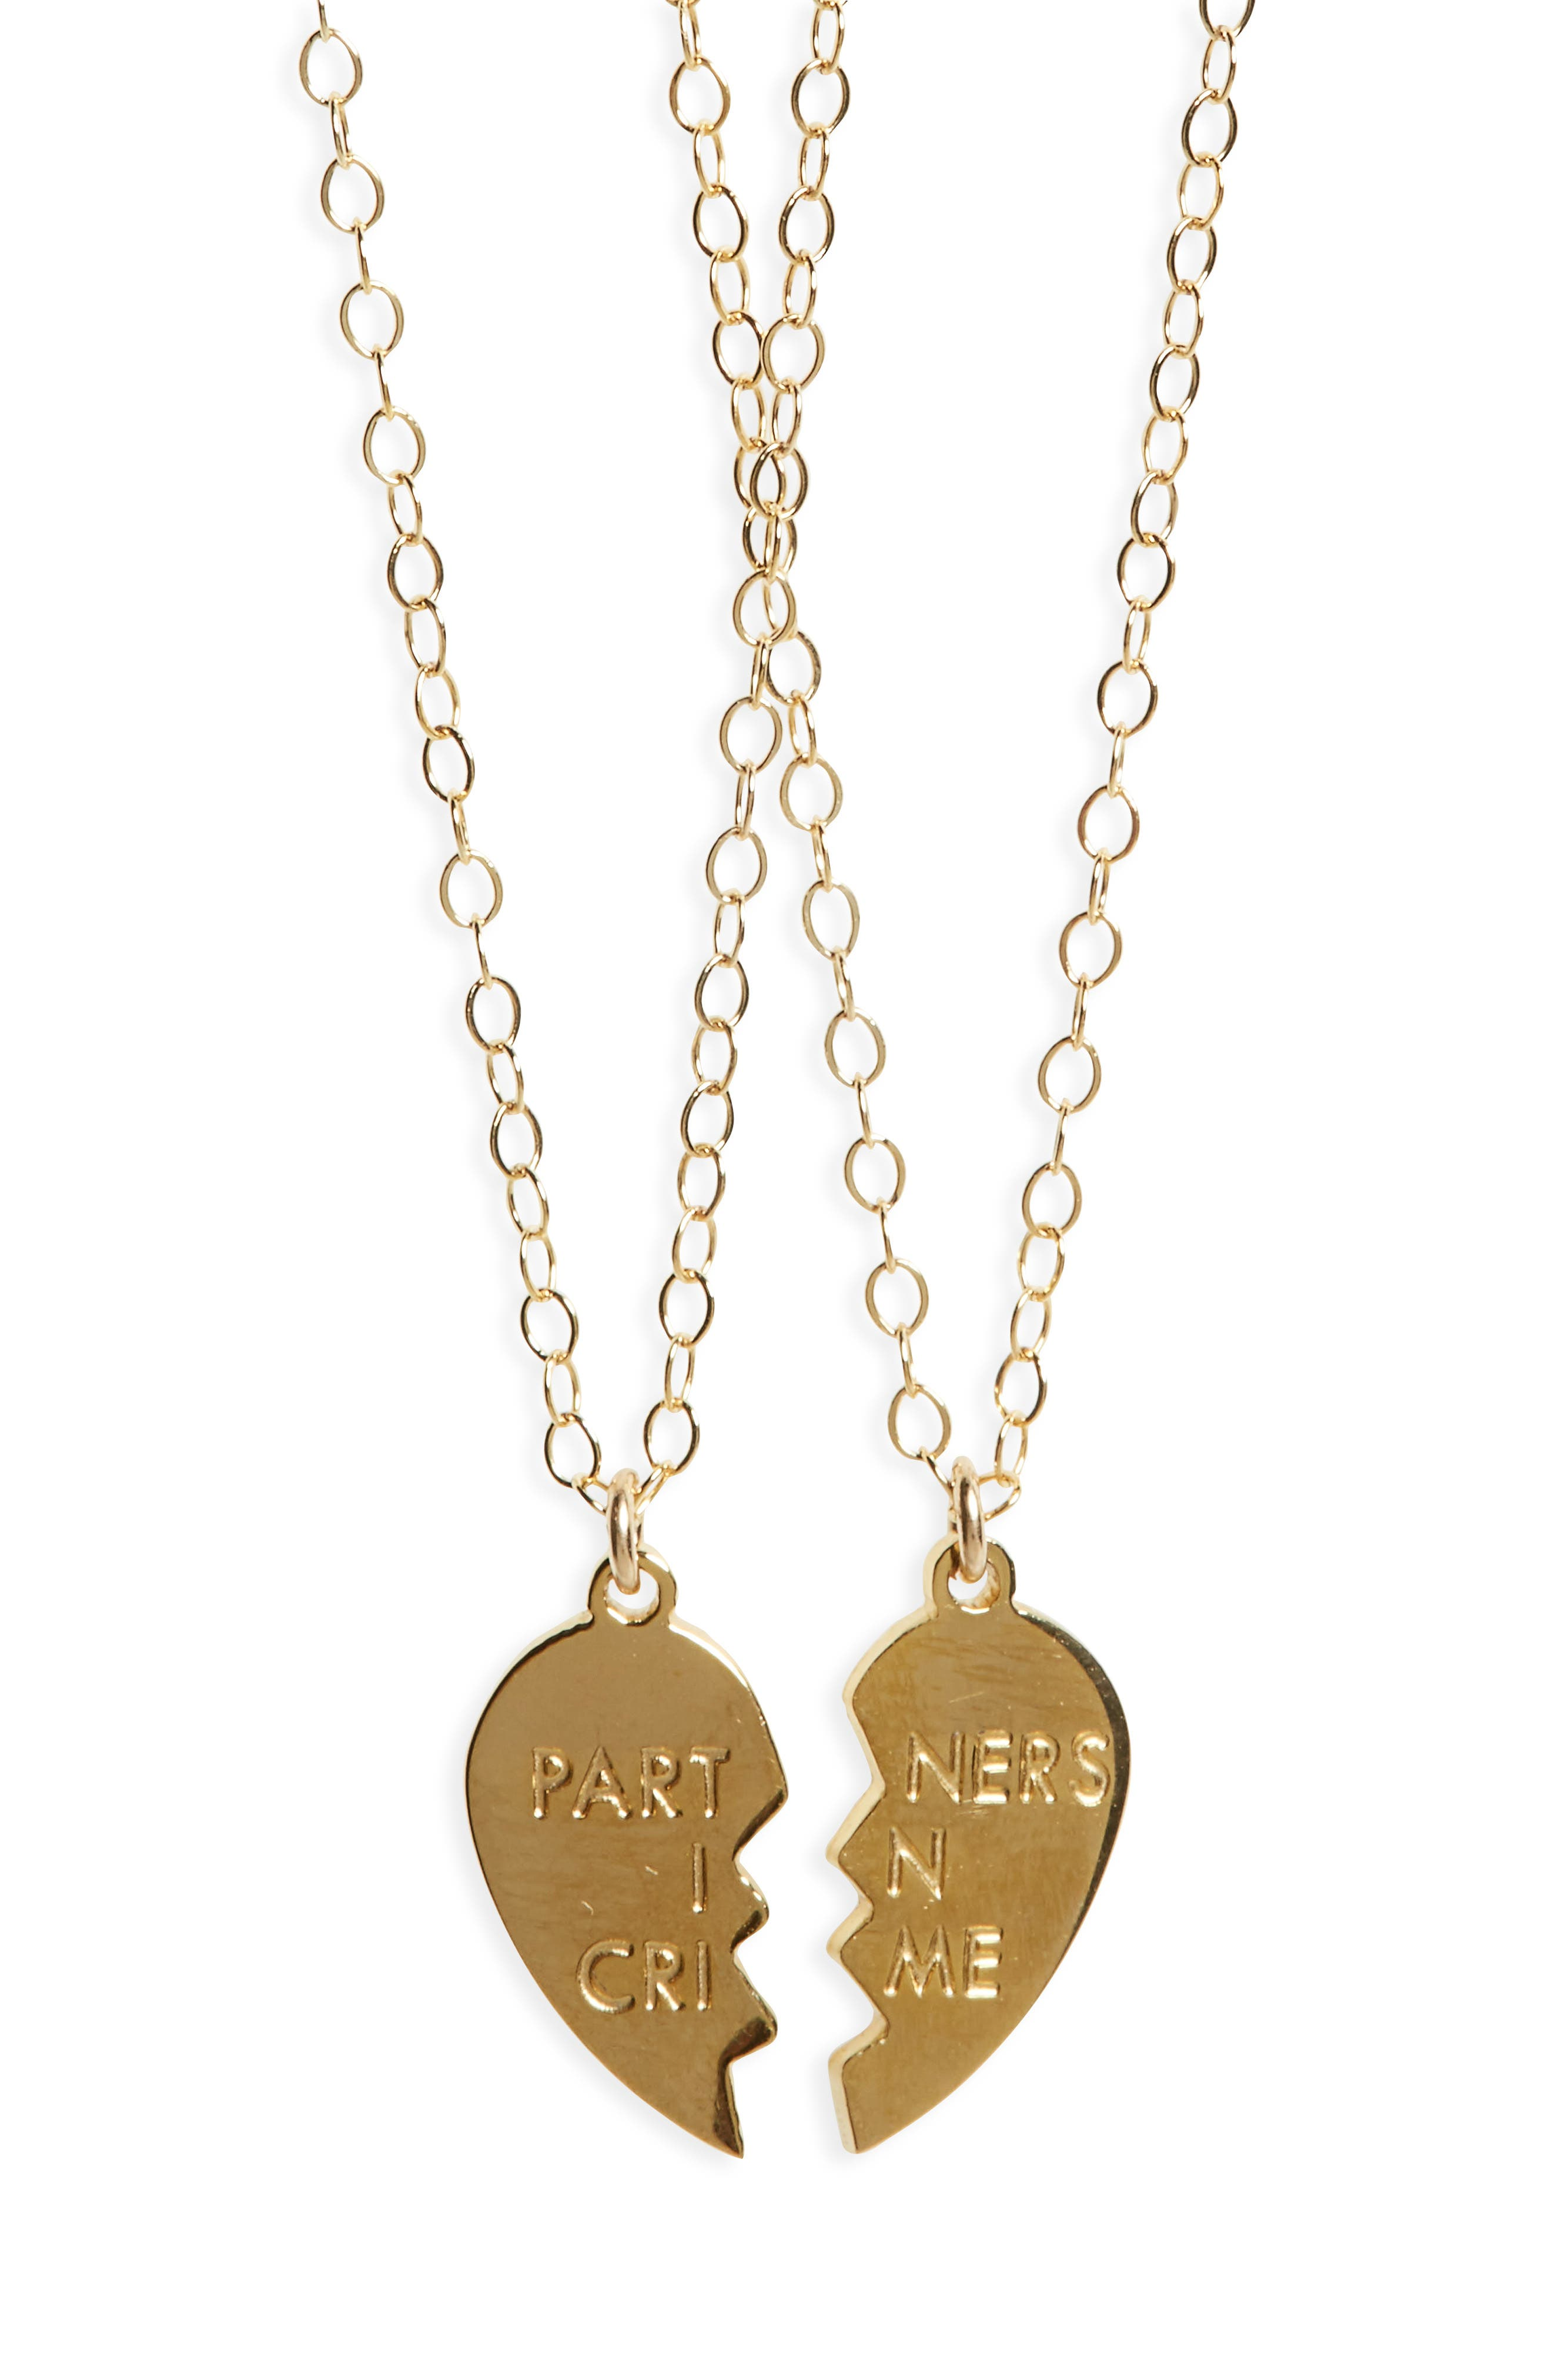 Partners In Crime Necklace Set,                         Main,                         color, Gold